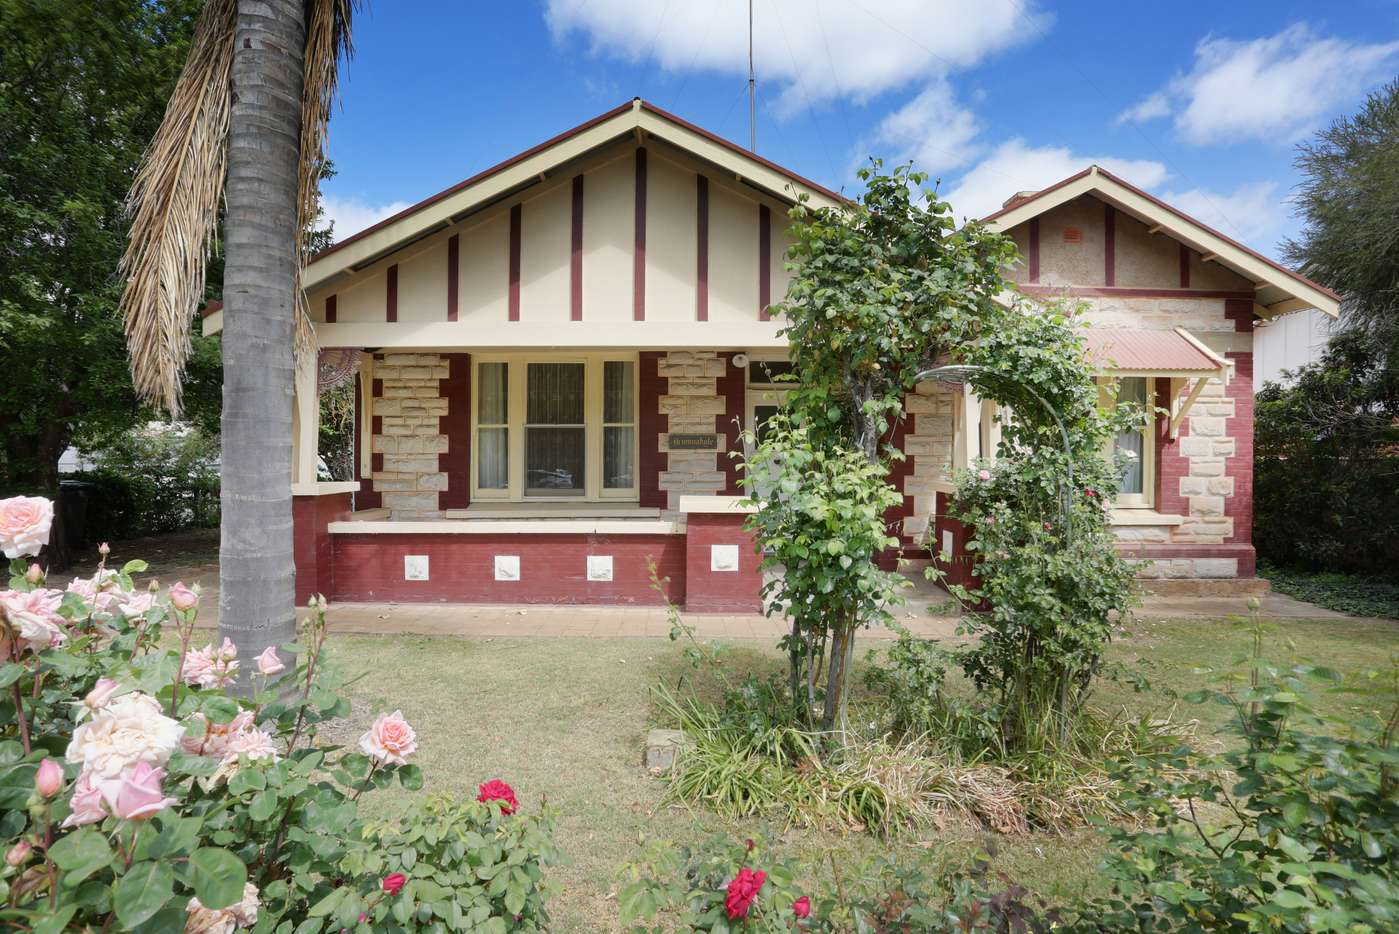 Main view of Homely house listing, 32 Jonathon Street, Clare, SA 5453